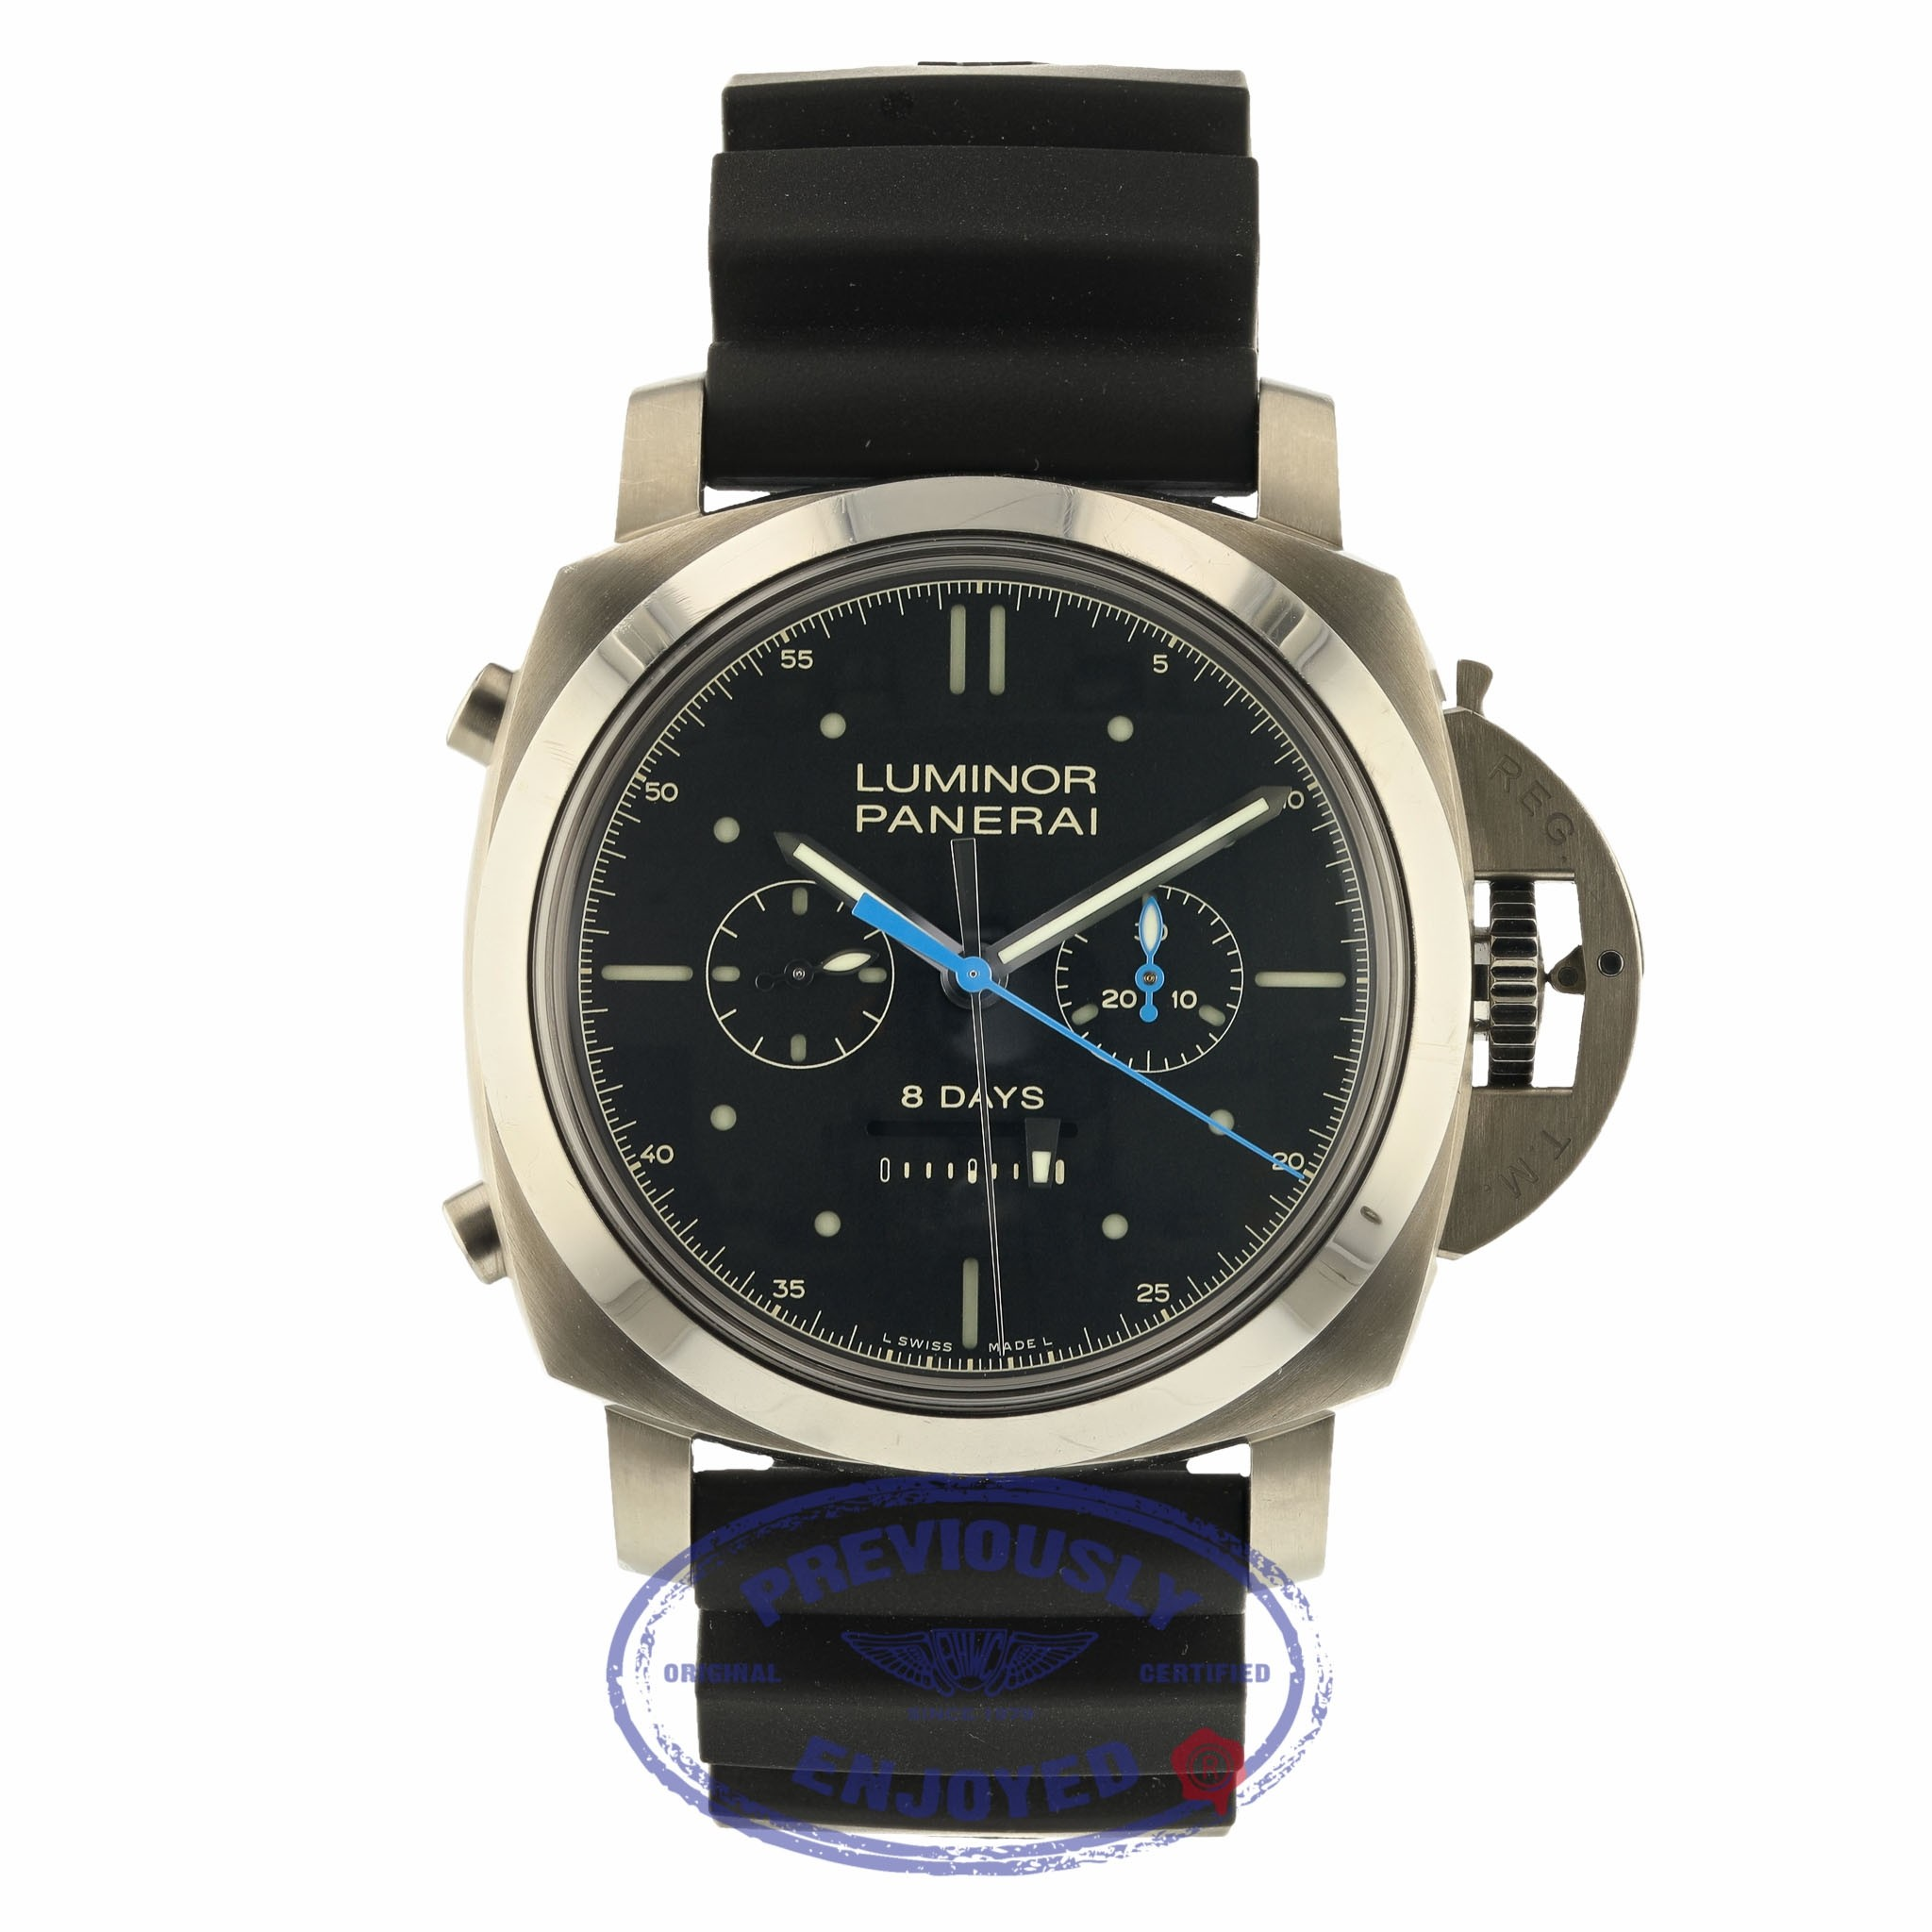 Panerai Luminor 1950 Rattrapante 8 Days Black Dial PAM00530 7757K5